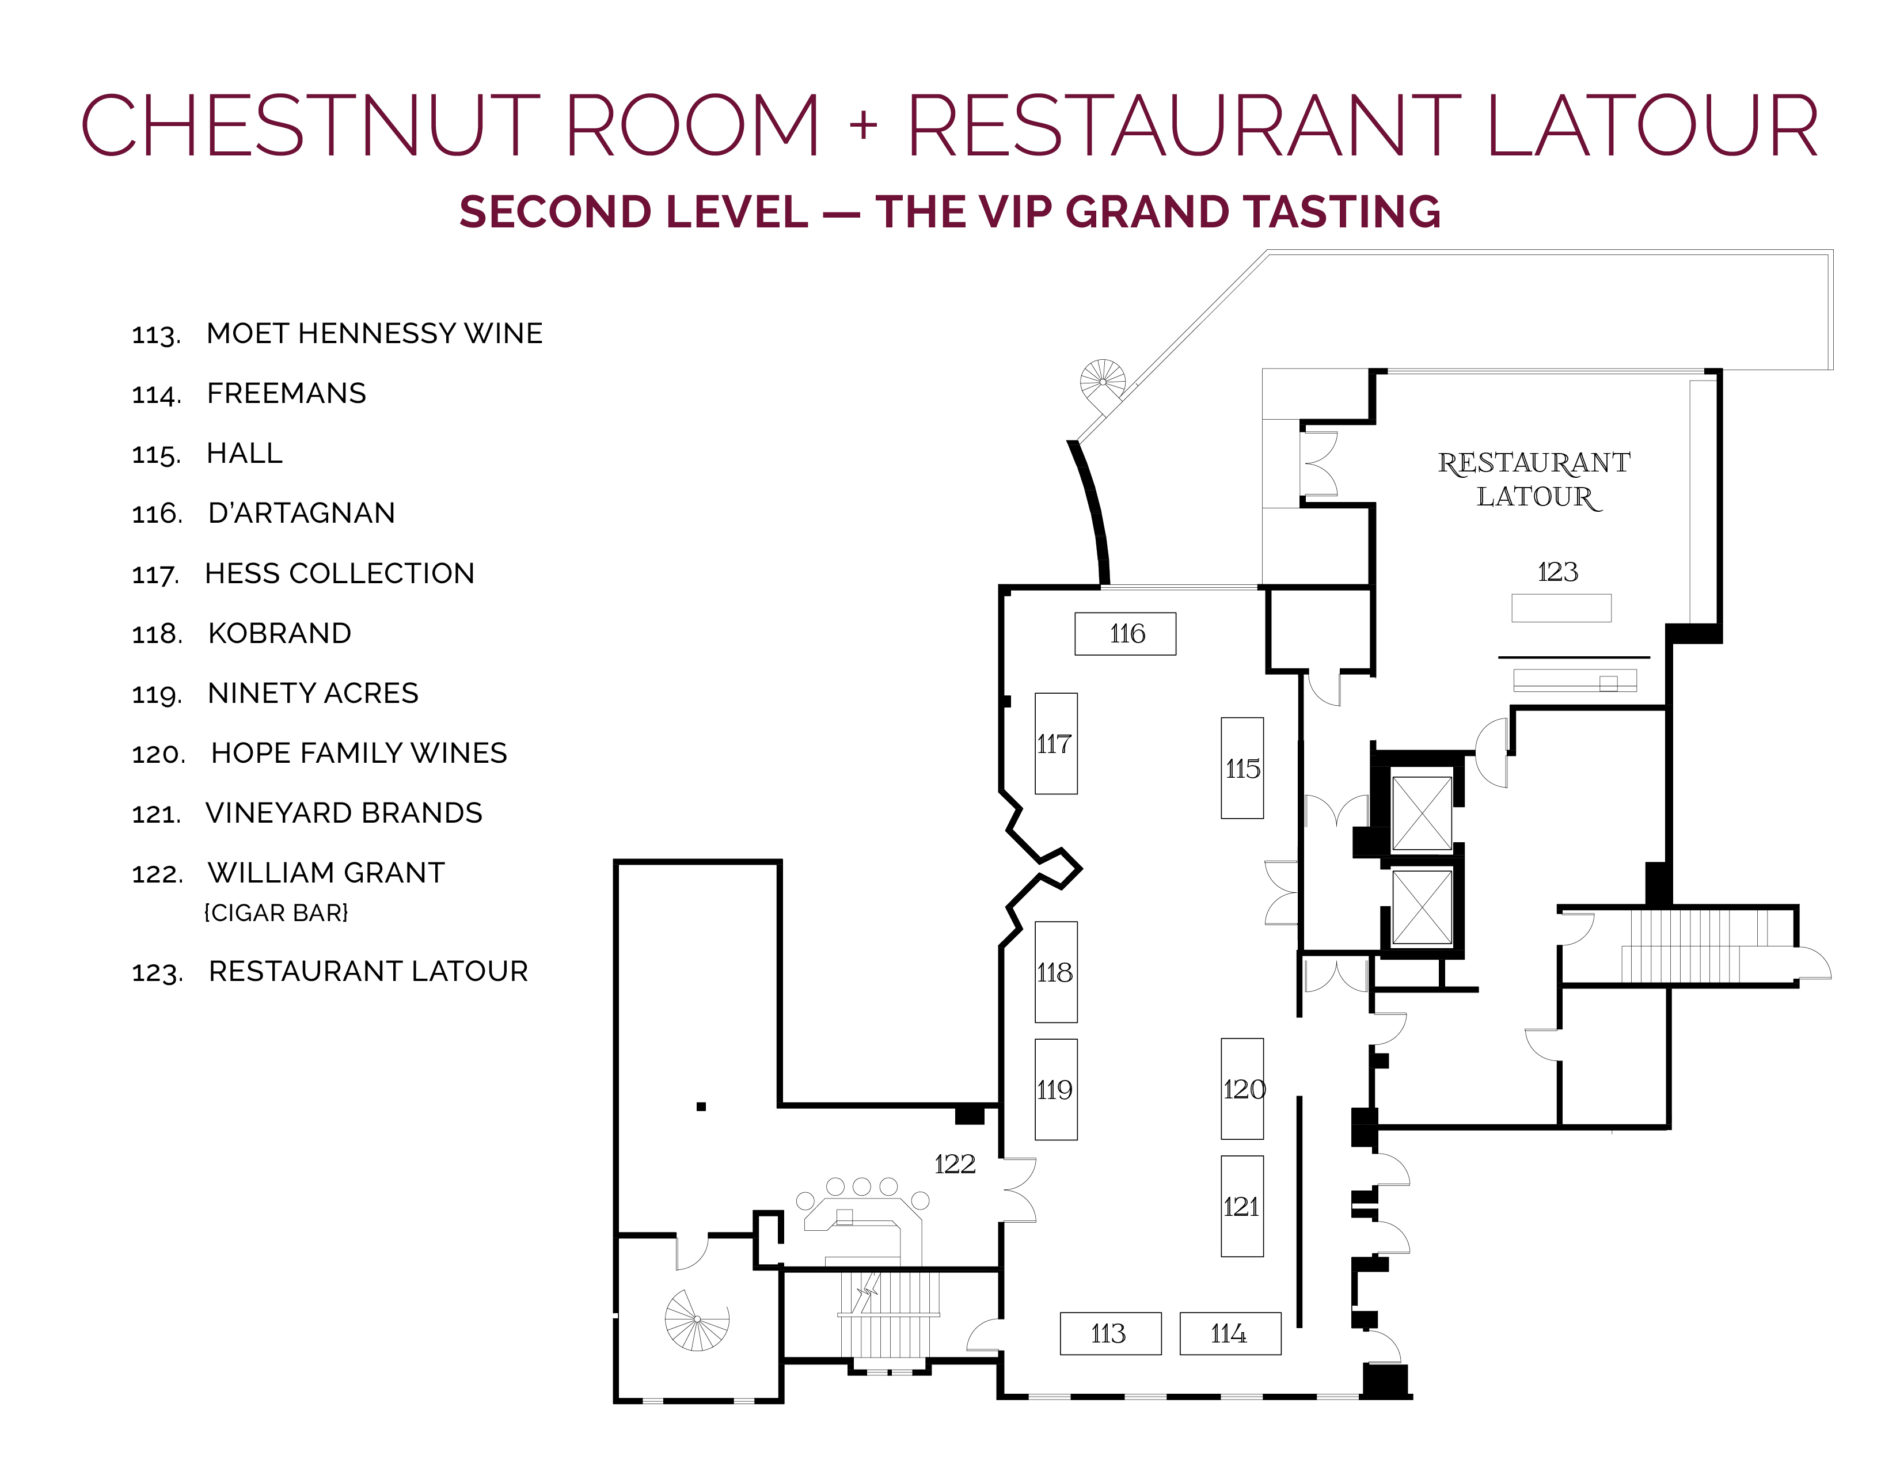 NJWFF Floorplan 2019 Chestnut Room